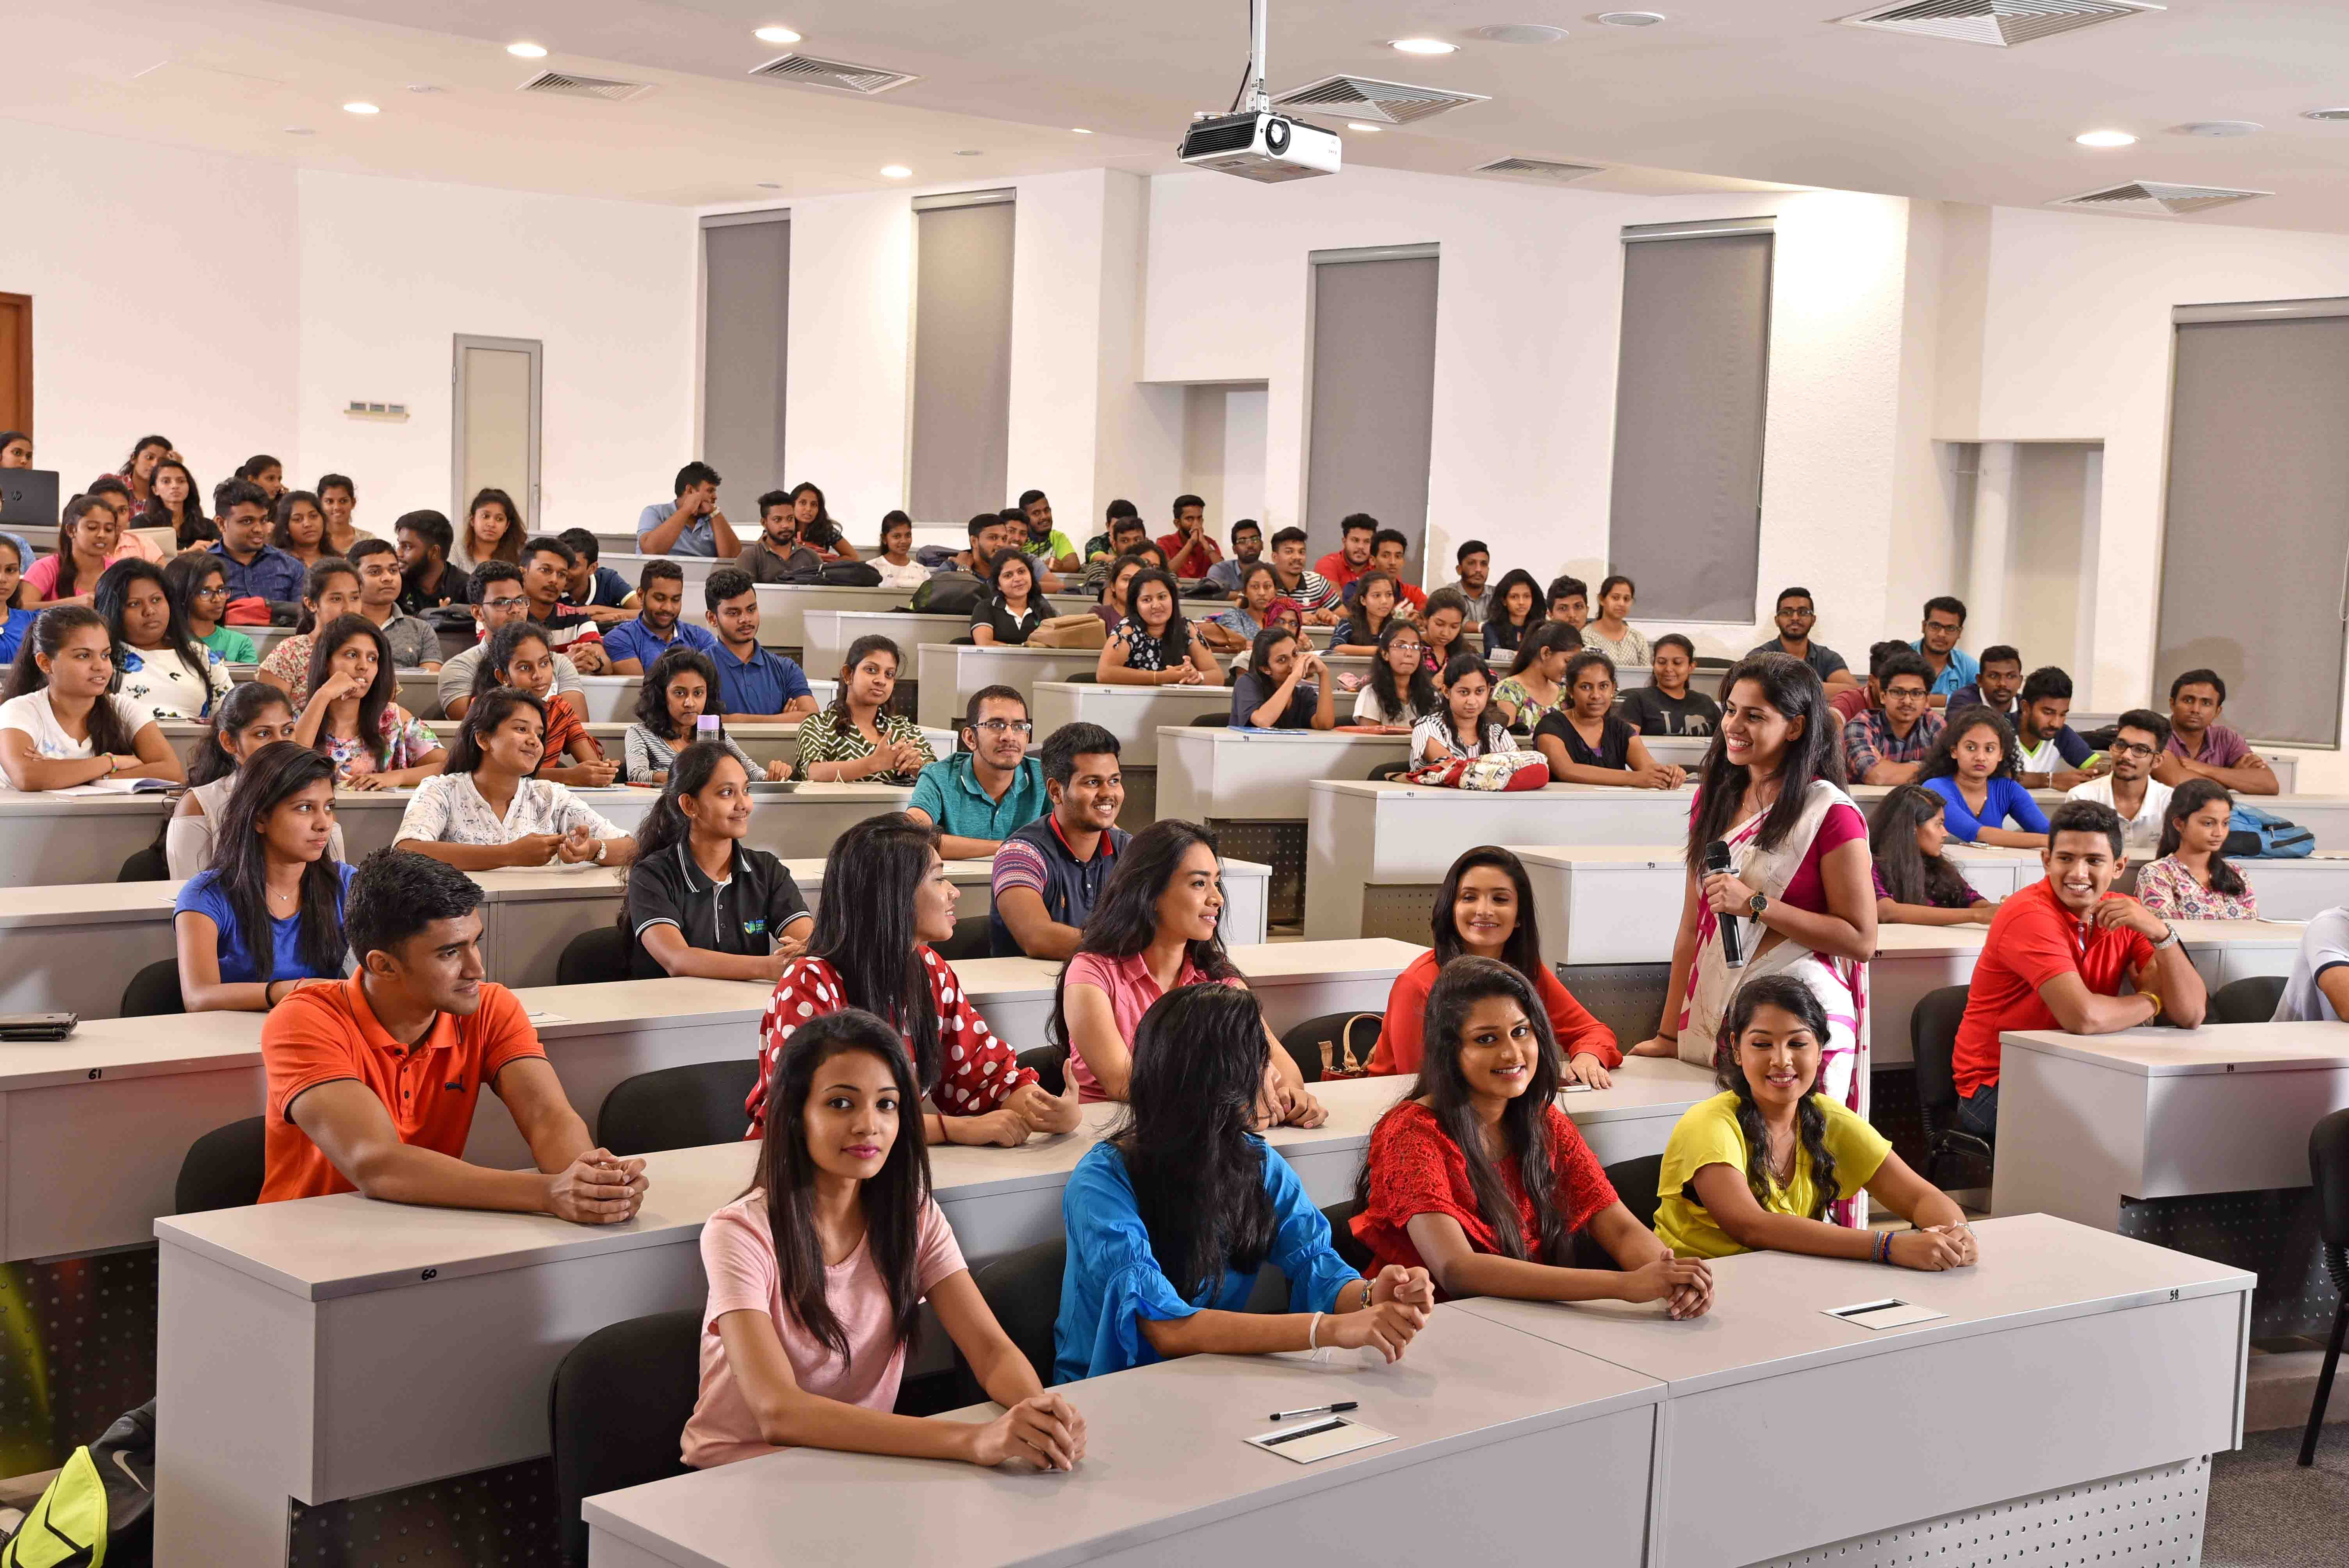 nsbm-facilities-lecturehall-3